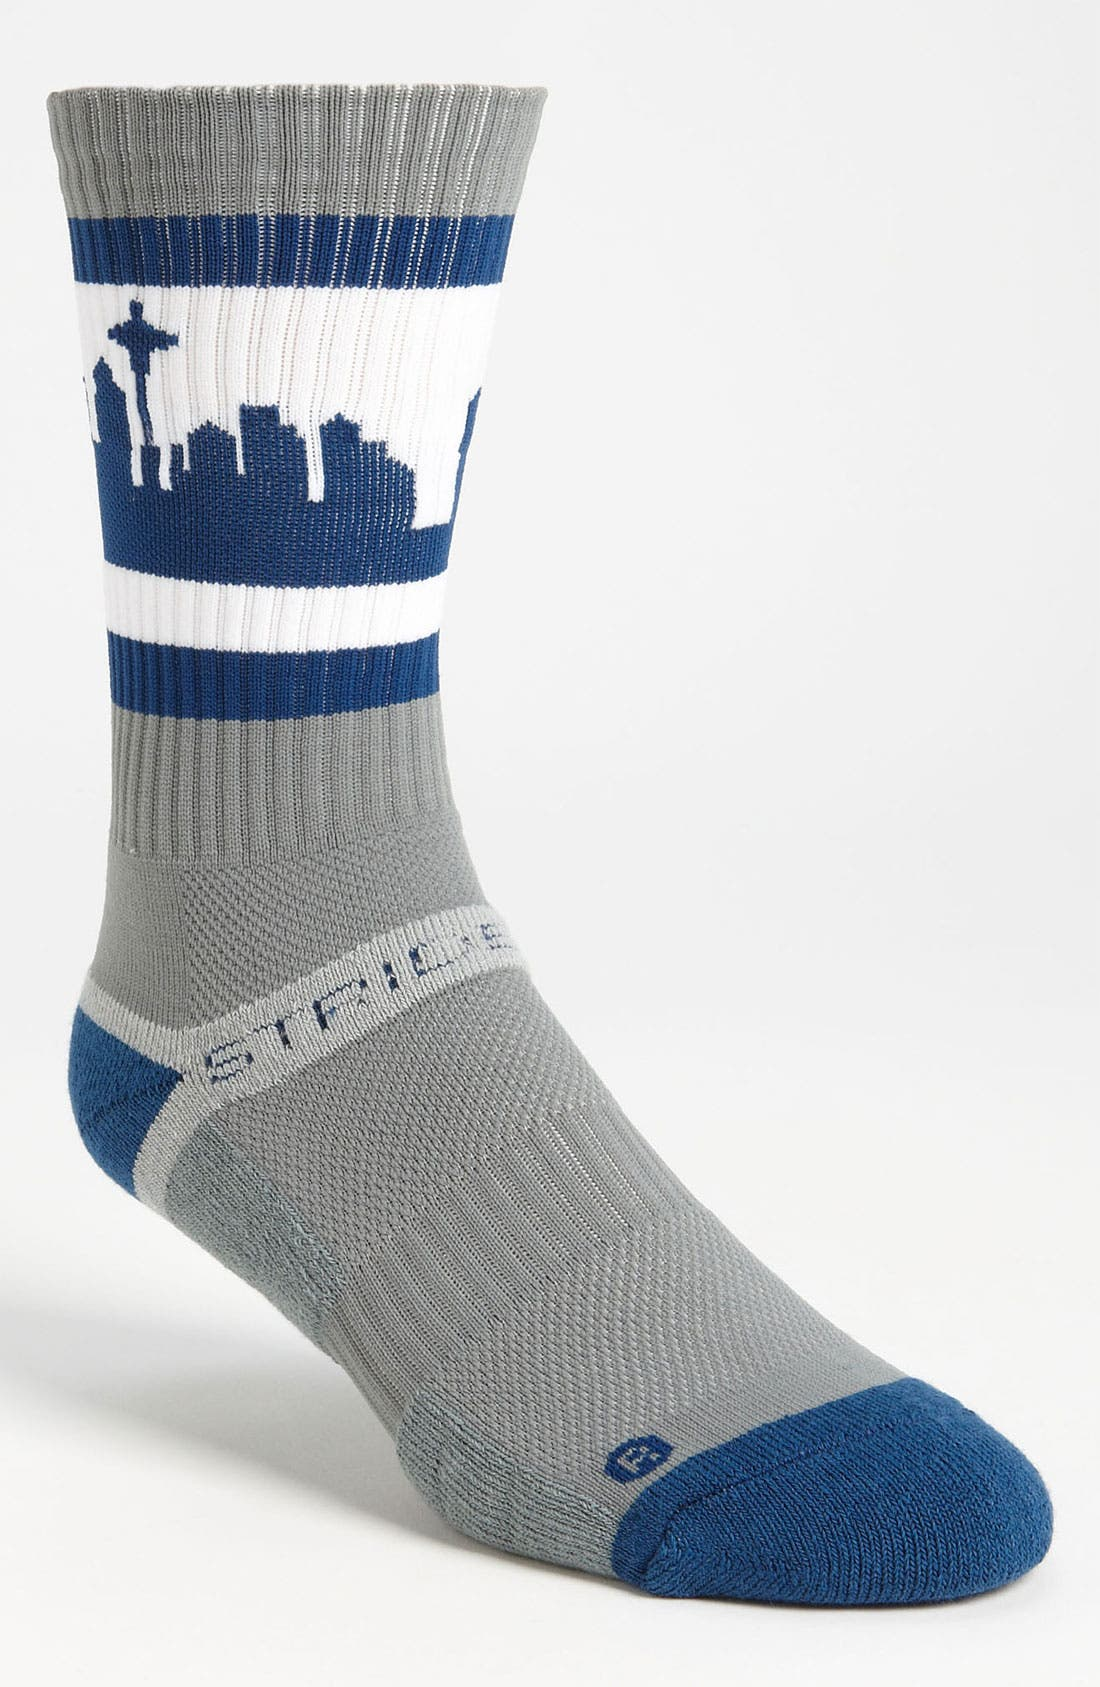 Alternate Image 1 Selected - Strideline 'Georgetown' Sock